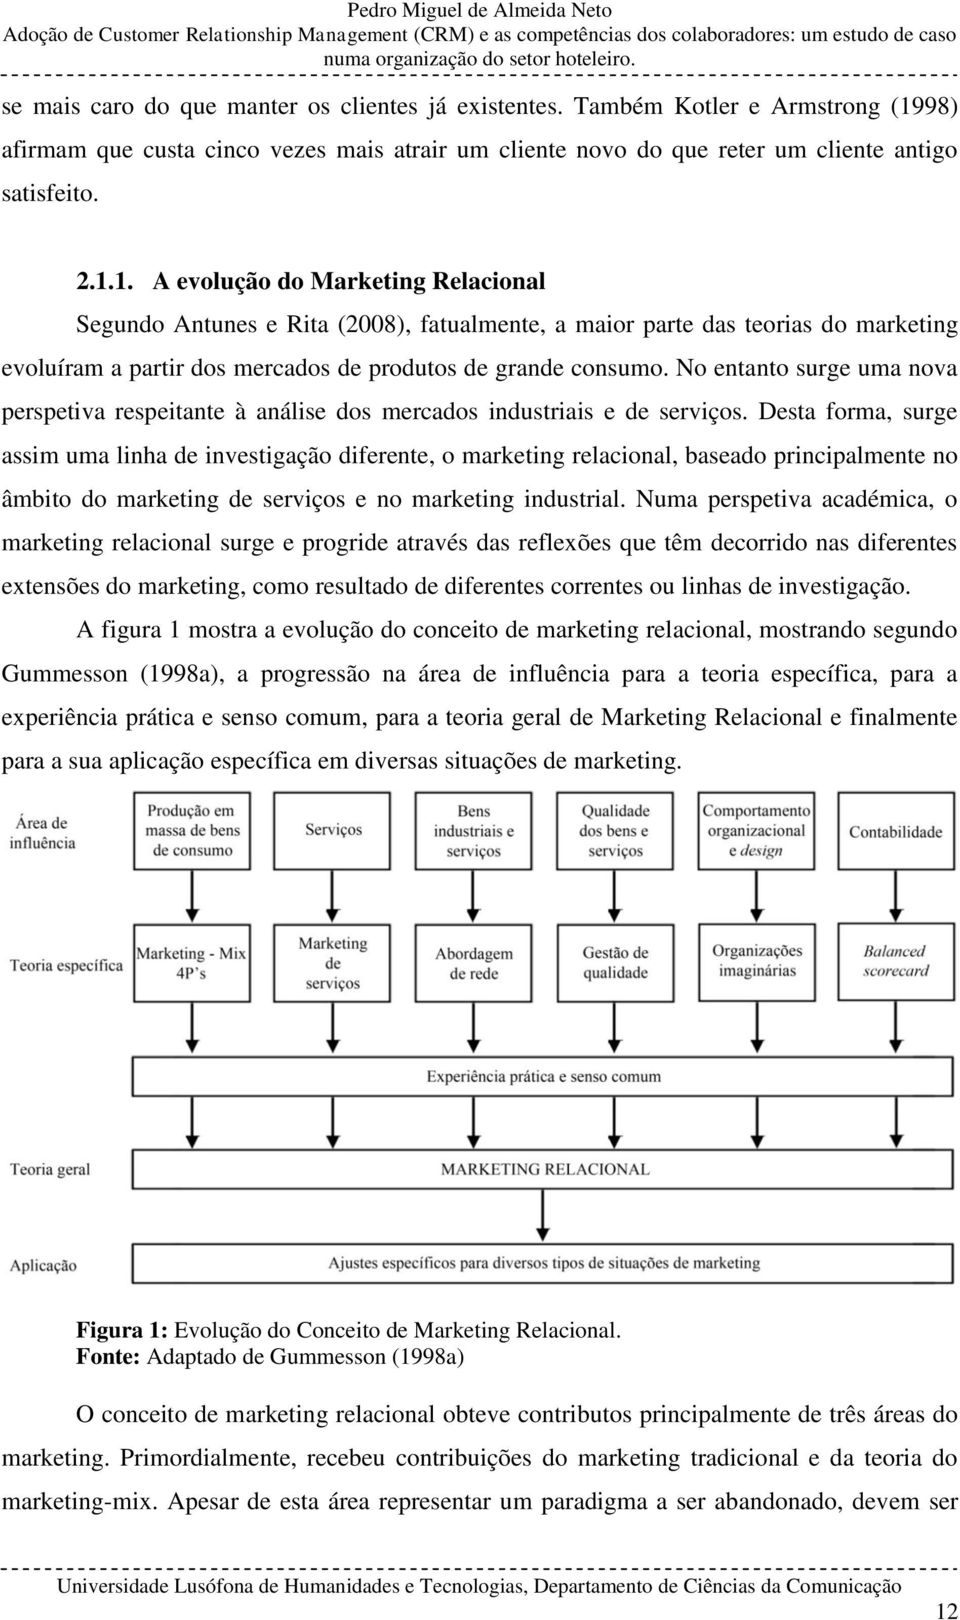 1. A evolução do Marketing Relacional Segundo Antunes e Rita (2008), fatualmente, a maior parte das teorias do marketing evoluíram a partir dos mercados de produtos de grande consumo.